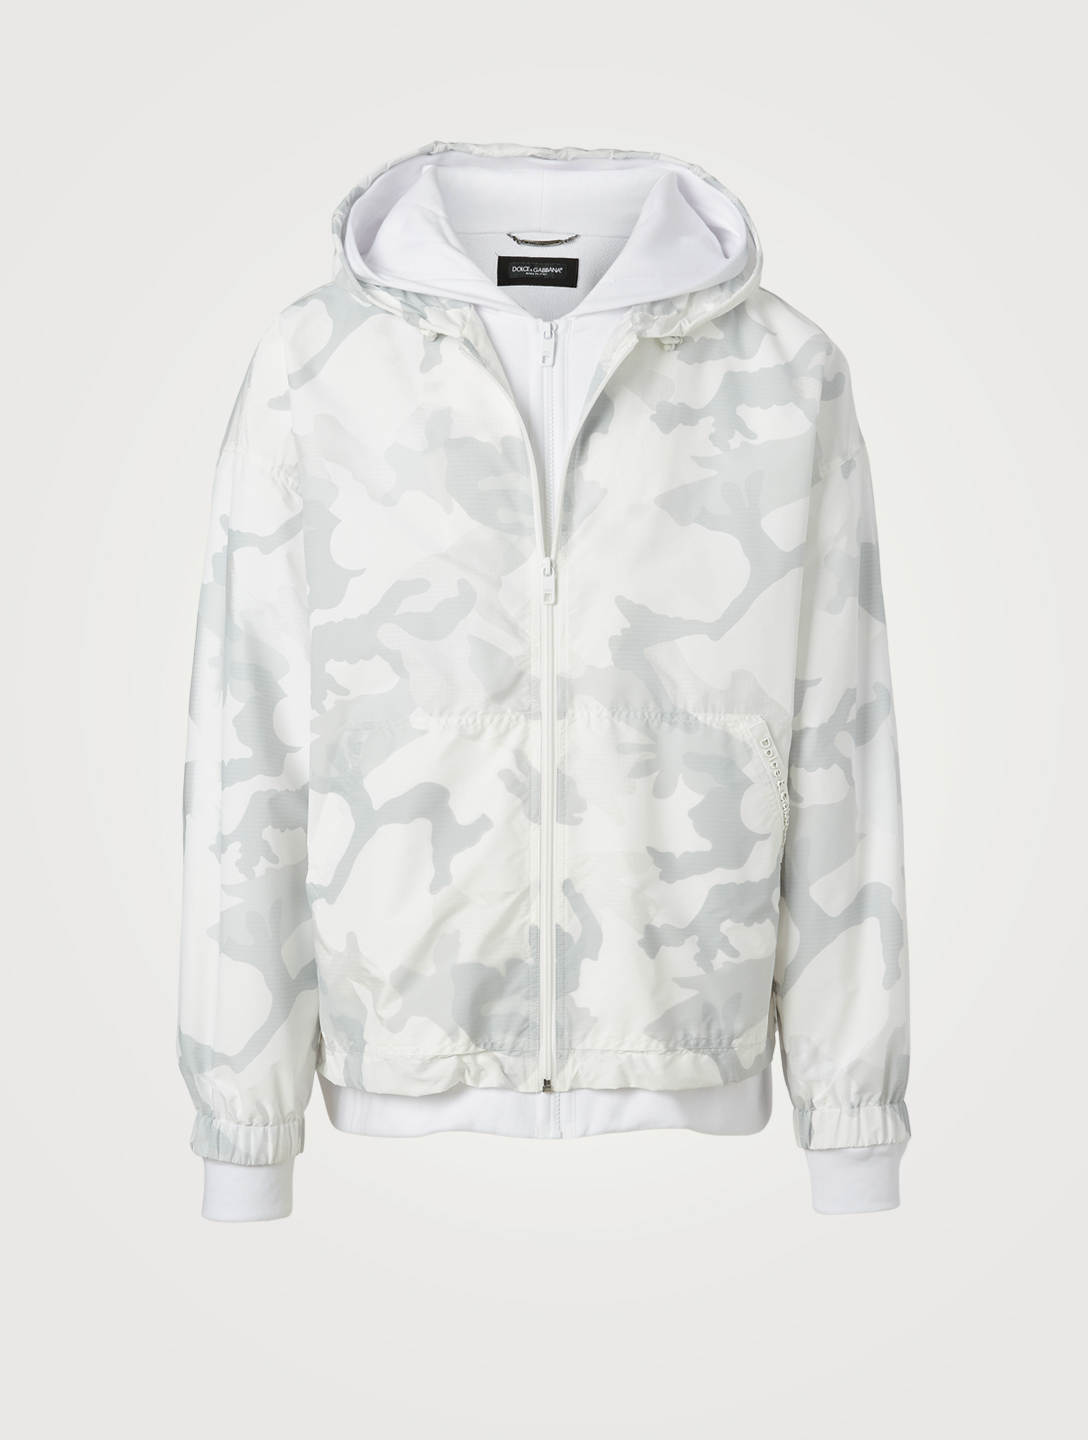 DOLCE & GABBANA Jersey And Nylon Jacket In Camo Print Men's Multi